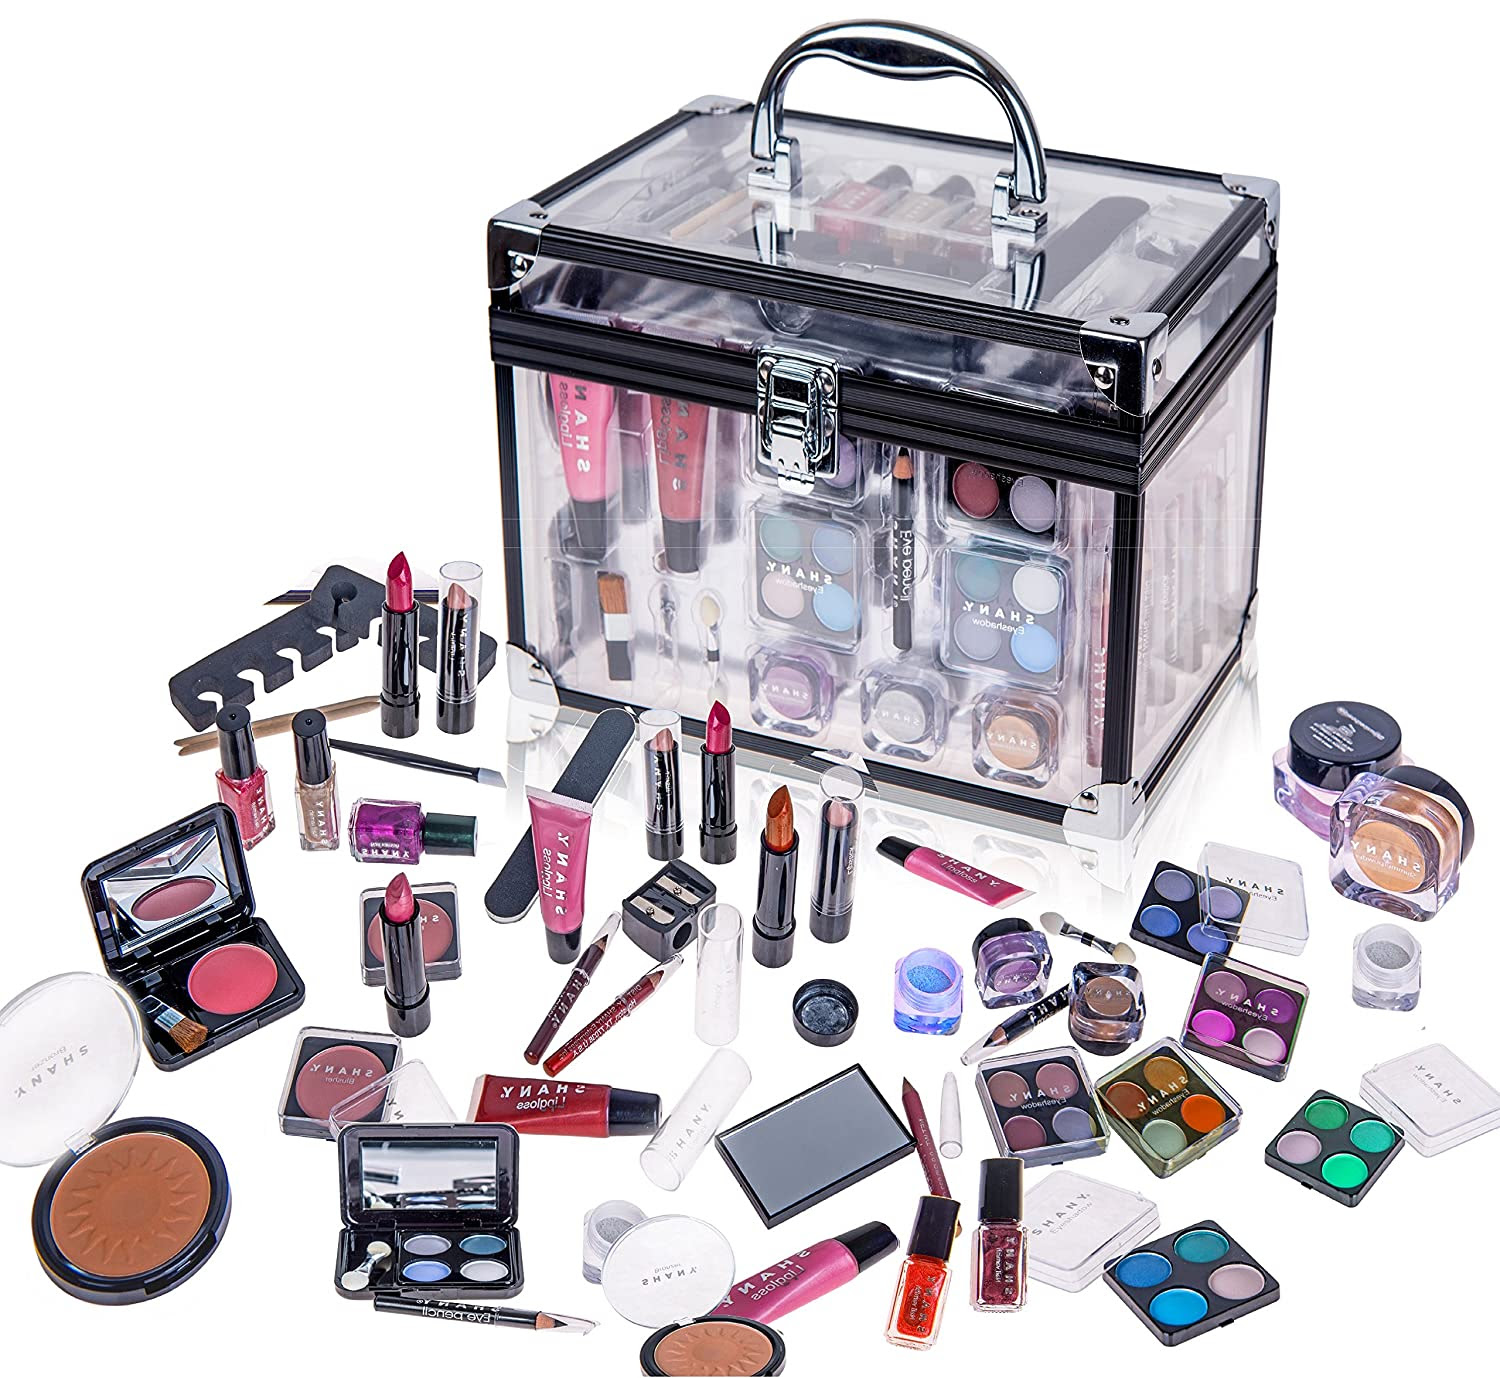 2014 Makeup Gift Guide - SHANY Makeup Kit